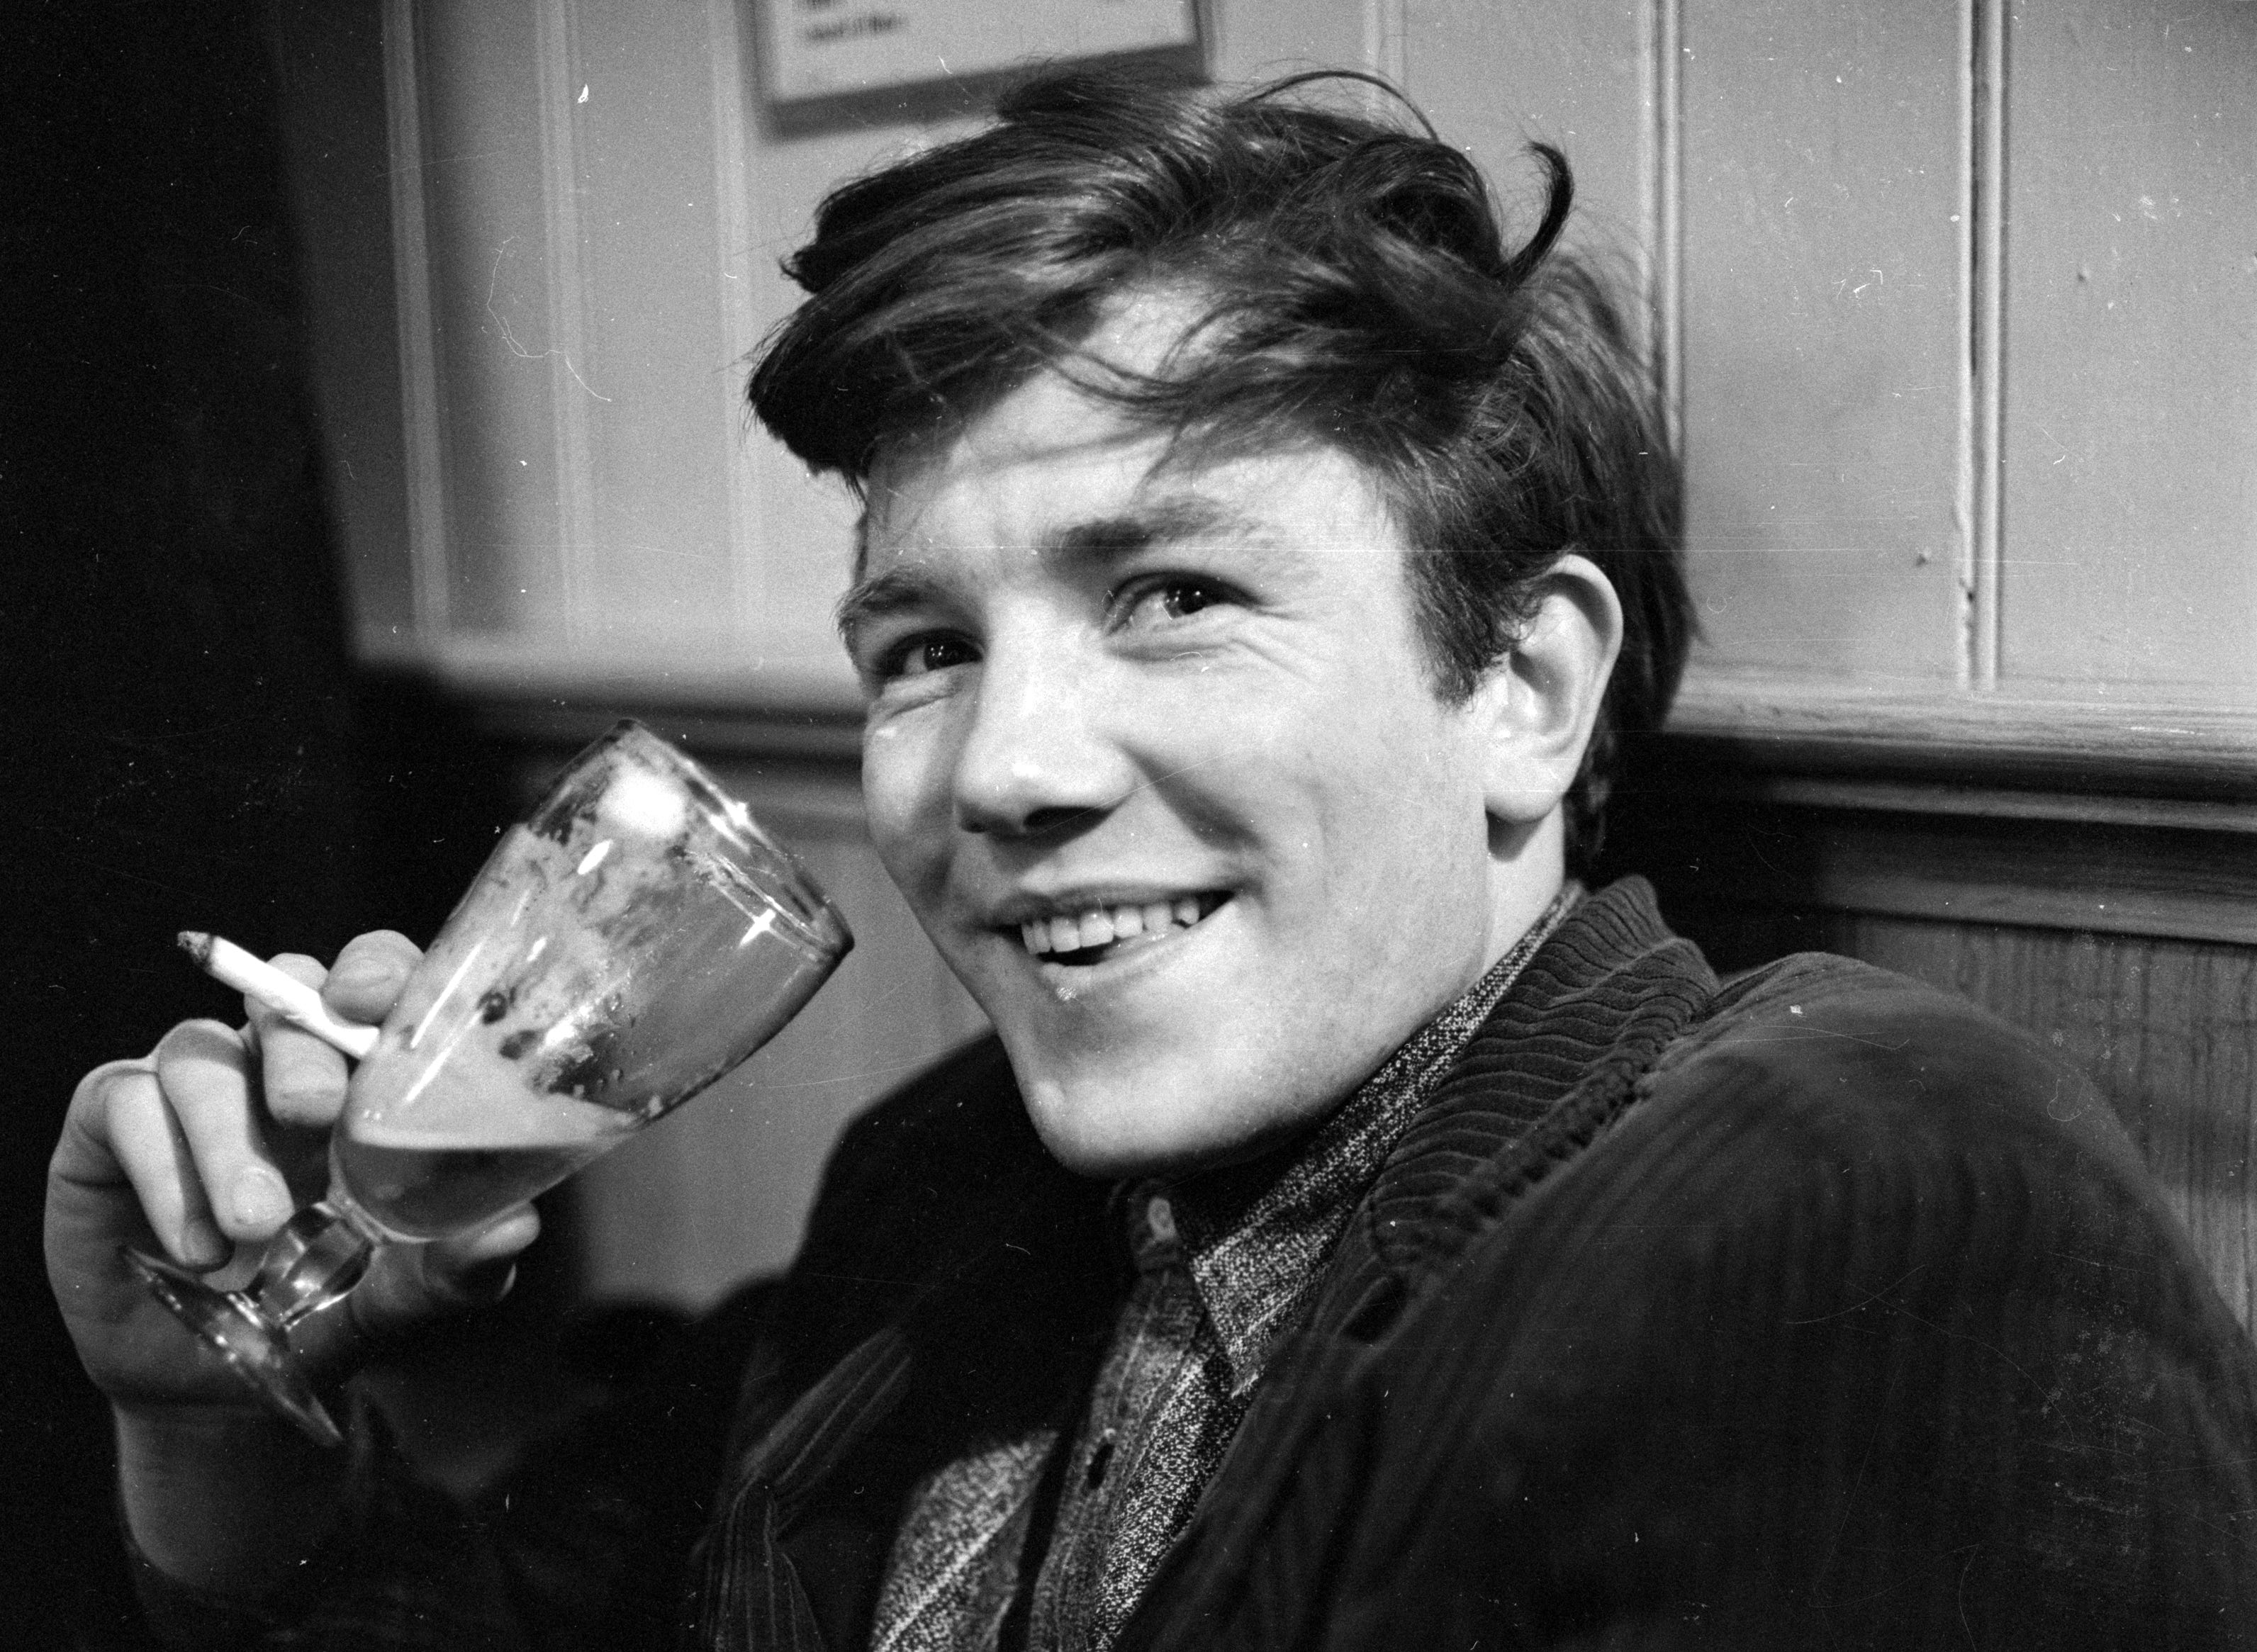 February 1961:  British film and stage actor Albert Finney enjoying a glass of beer in his regular pub behind the Cambridge Theatre in London.